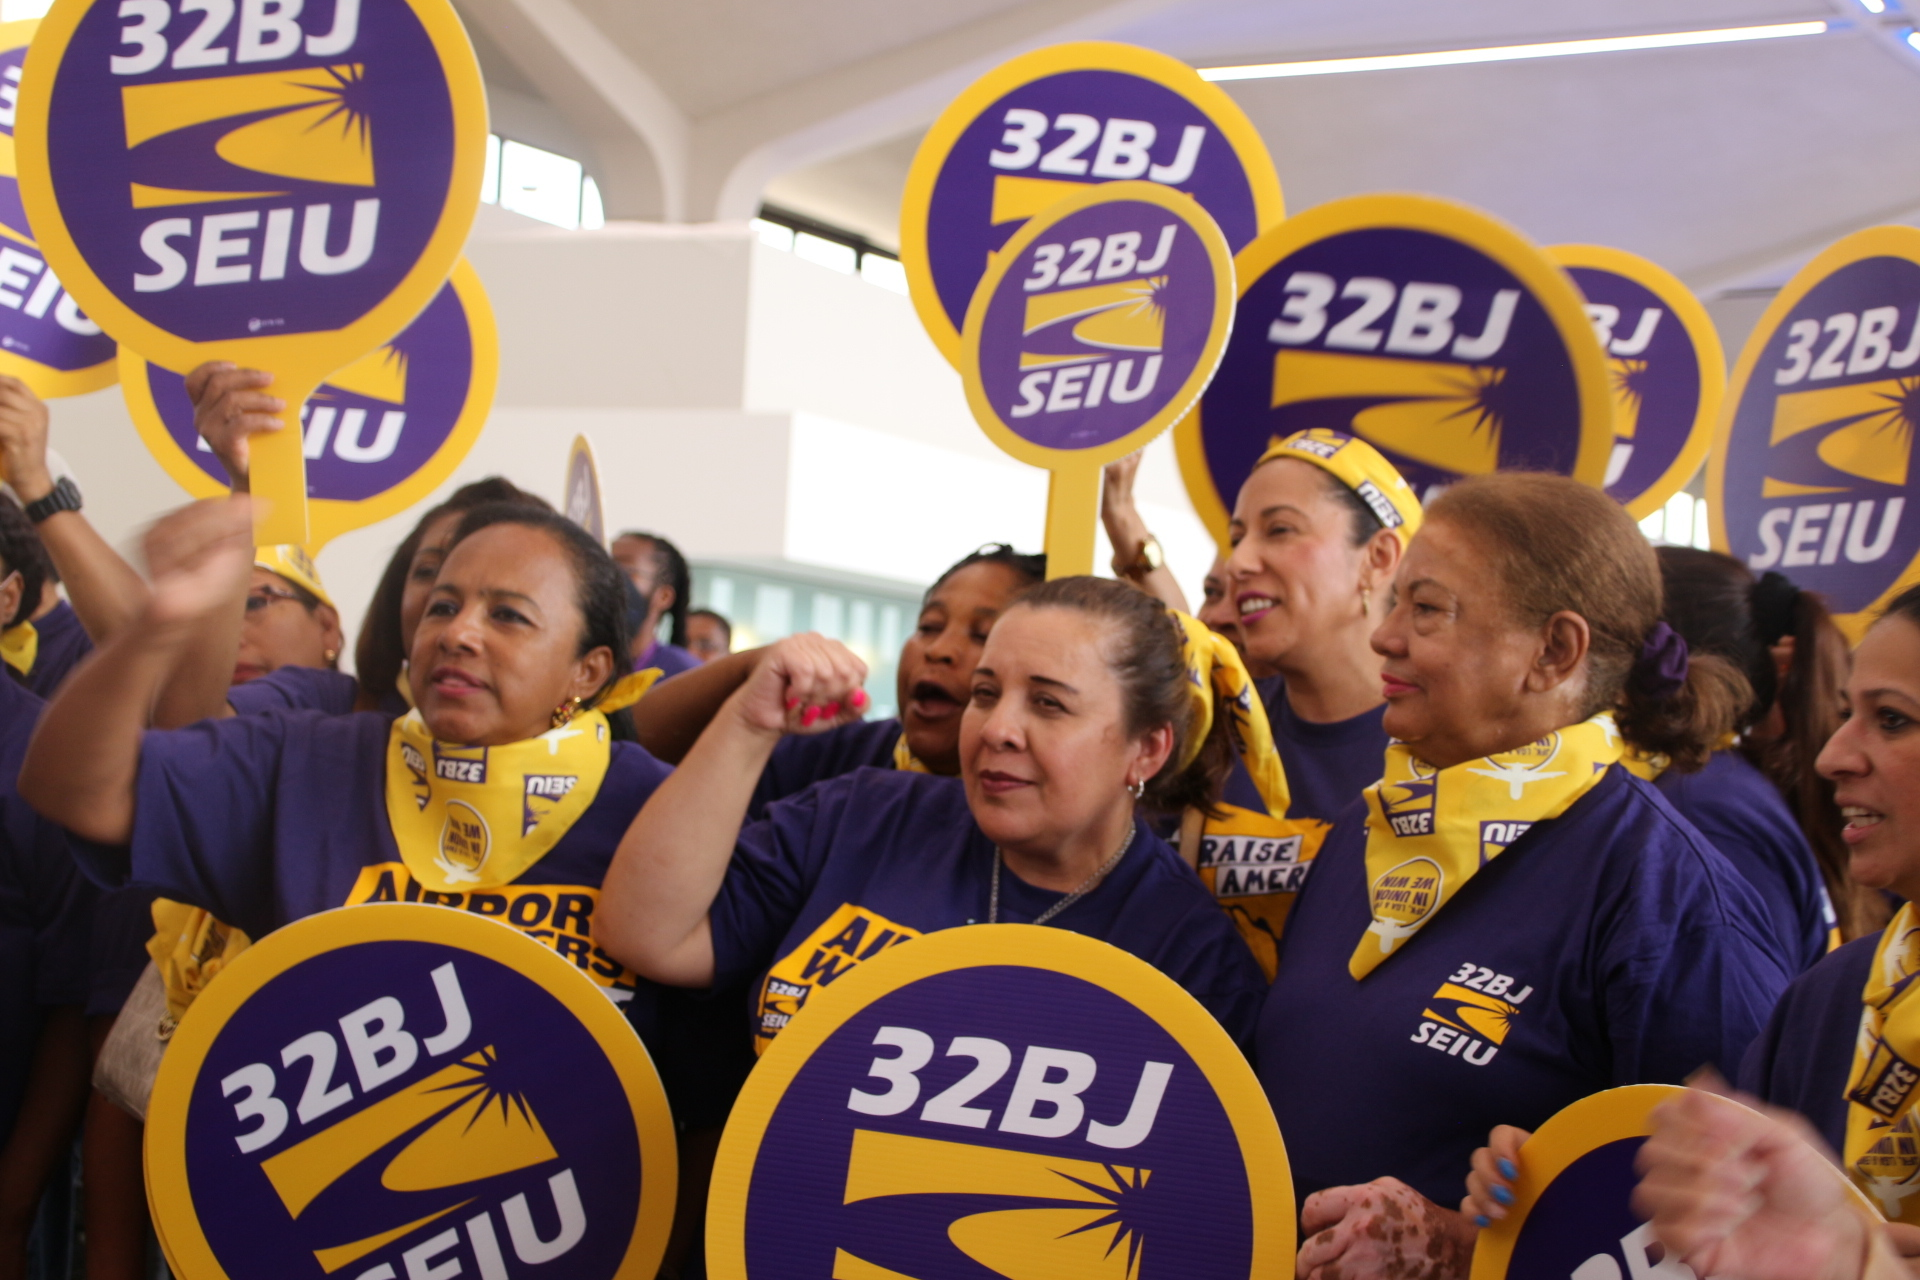 Newark Airport Workers Rally for $19 Minimum Wage Ahead of Port Authority Vote